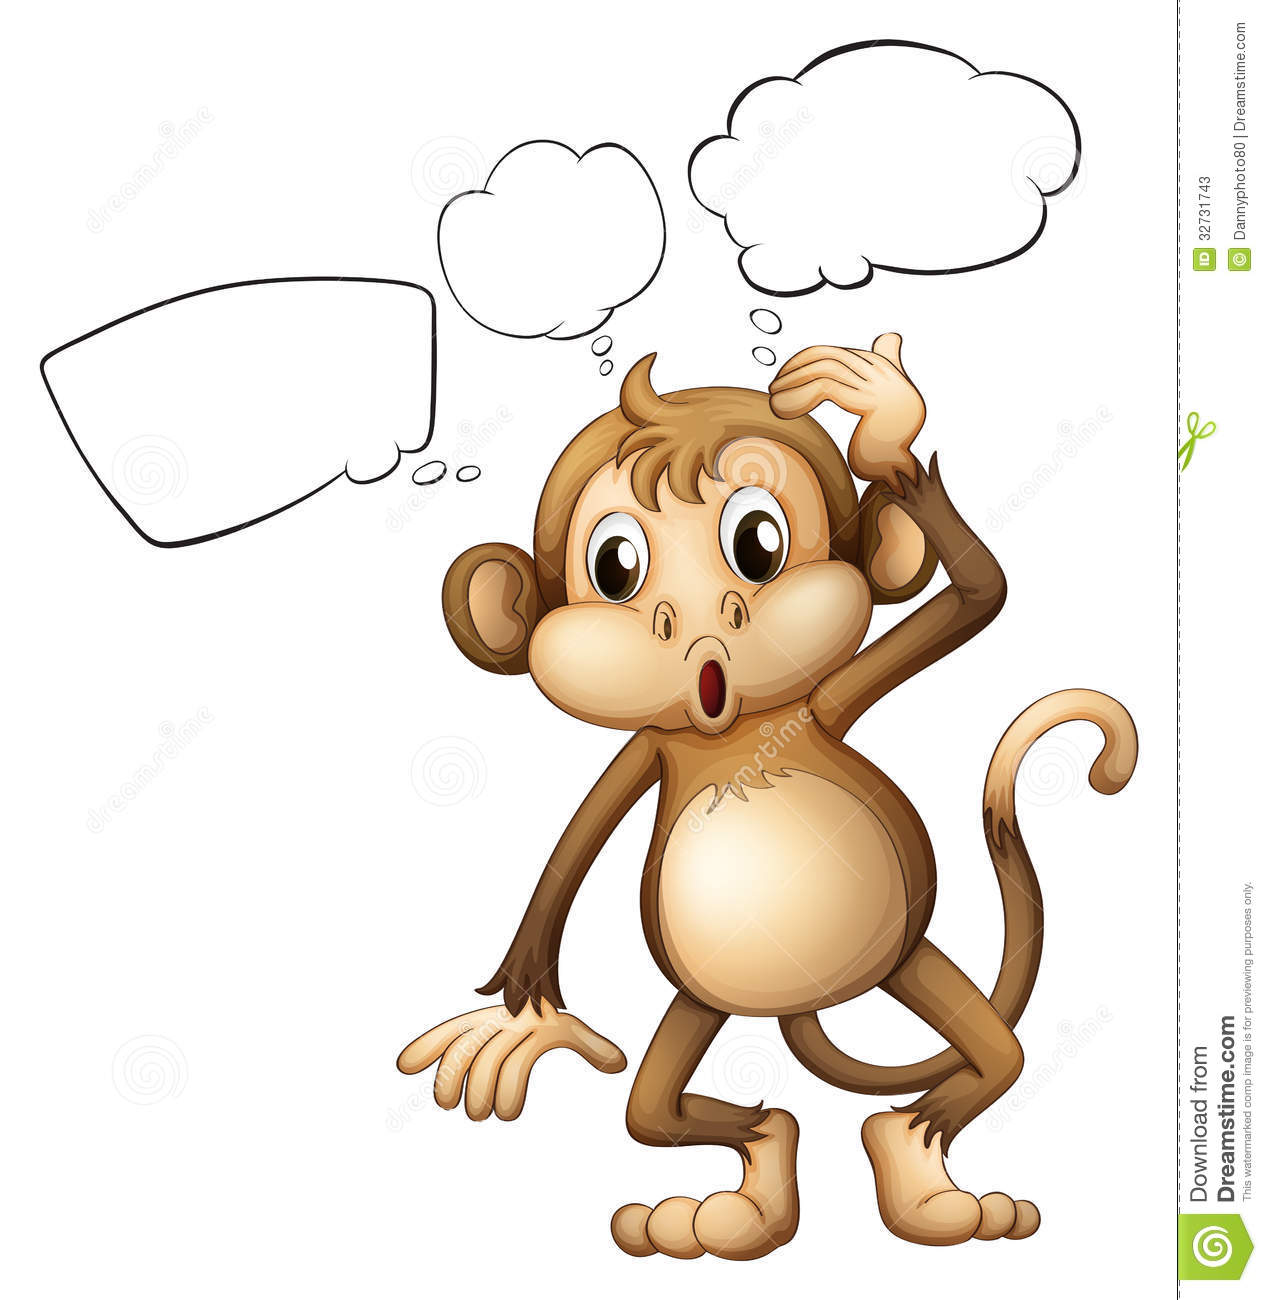 Thinking Monkey Clipart.